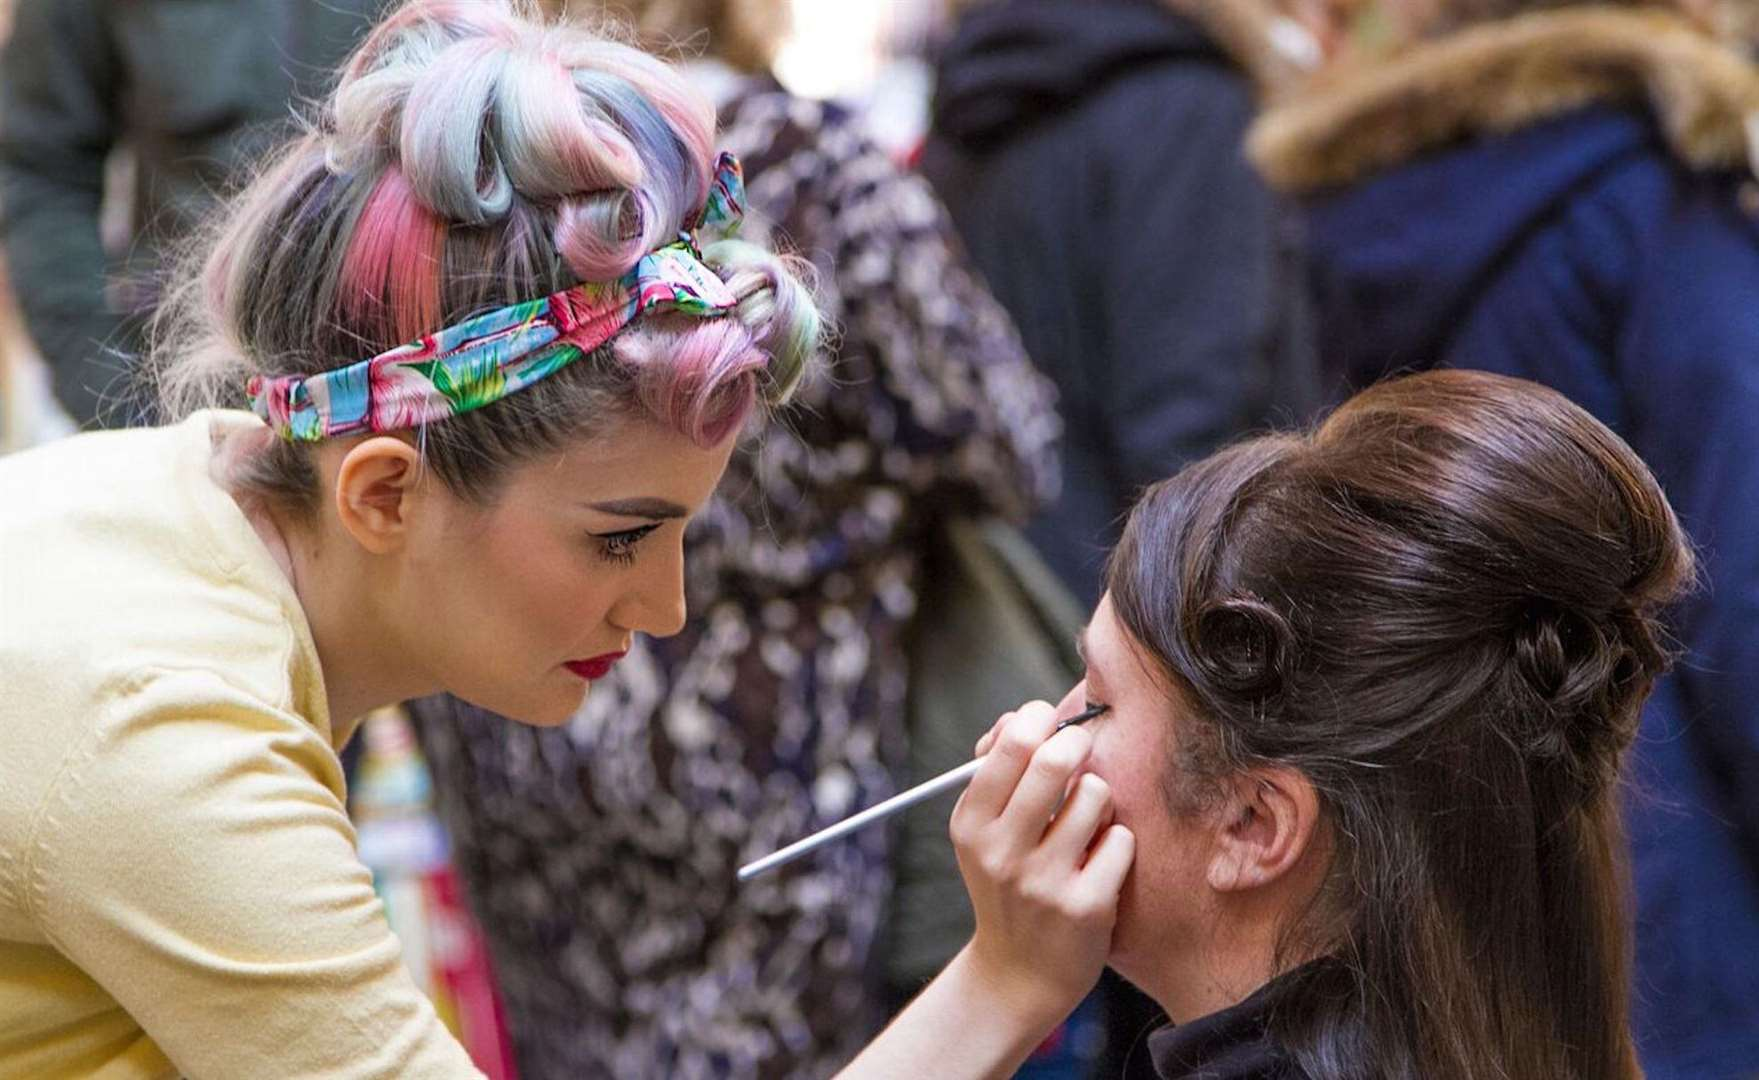 Vintage-inspired makeovers will be available at Lou Lou's Vintage Fair